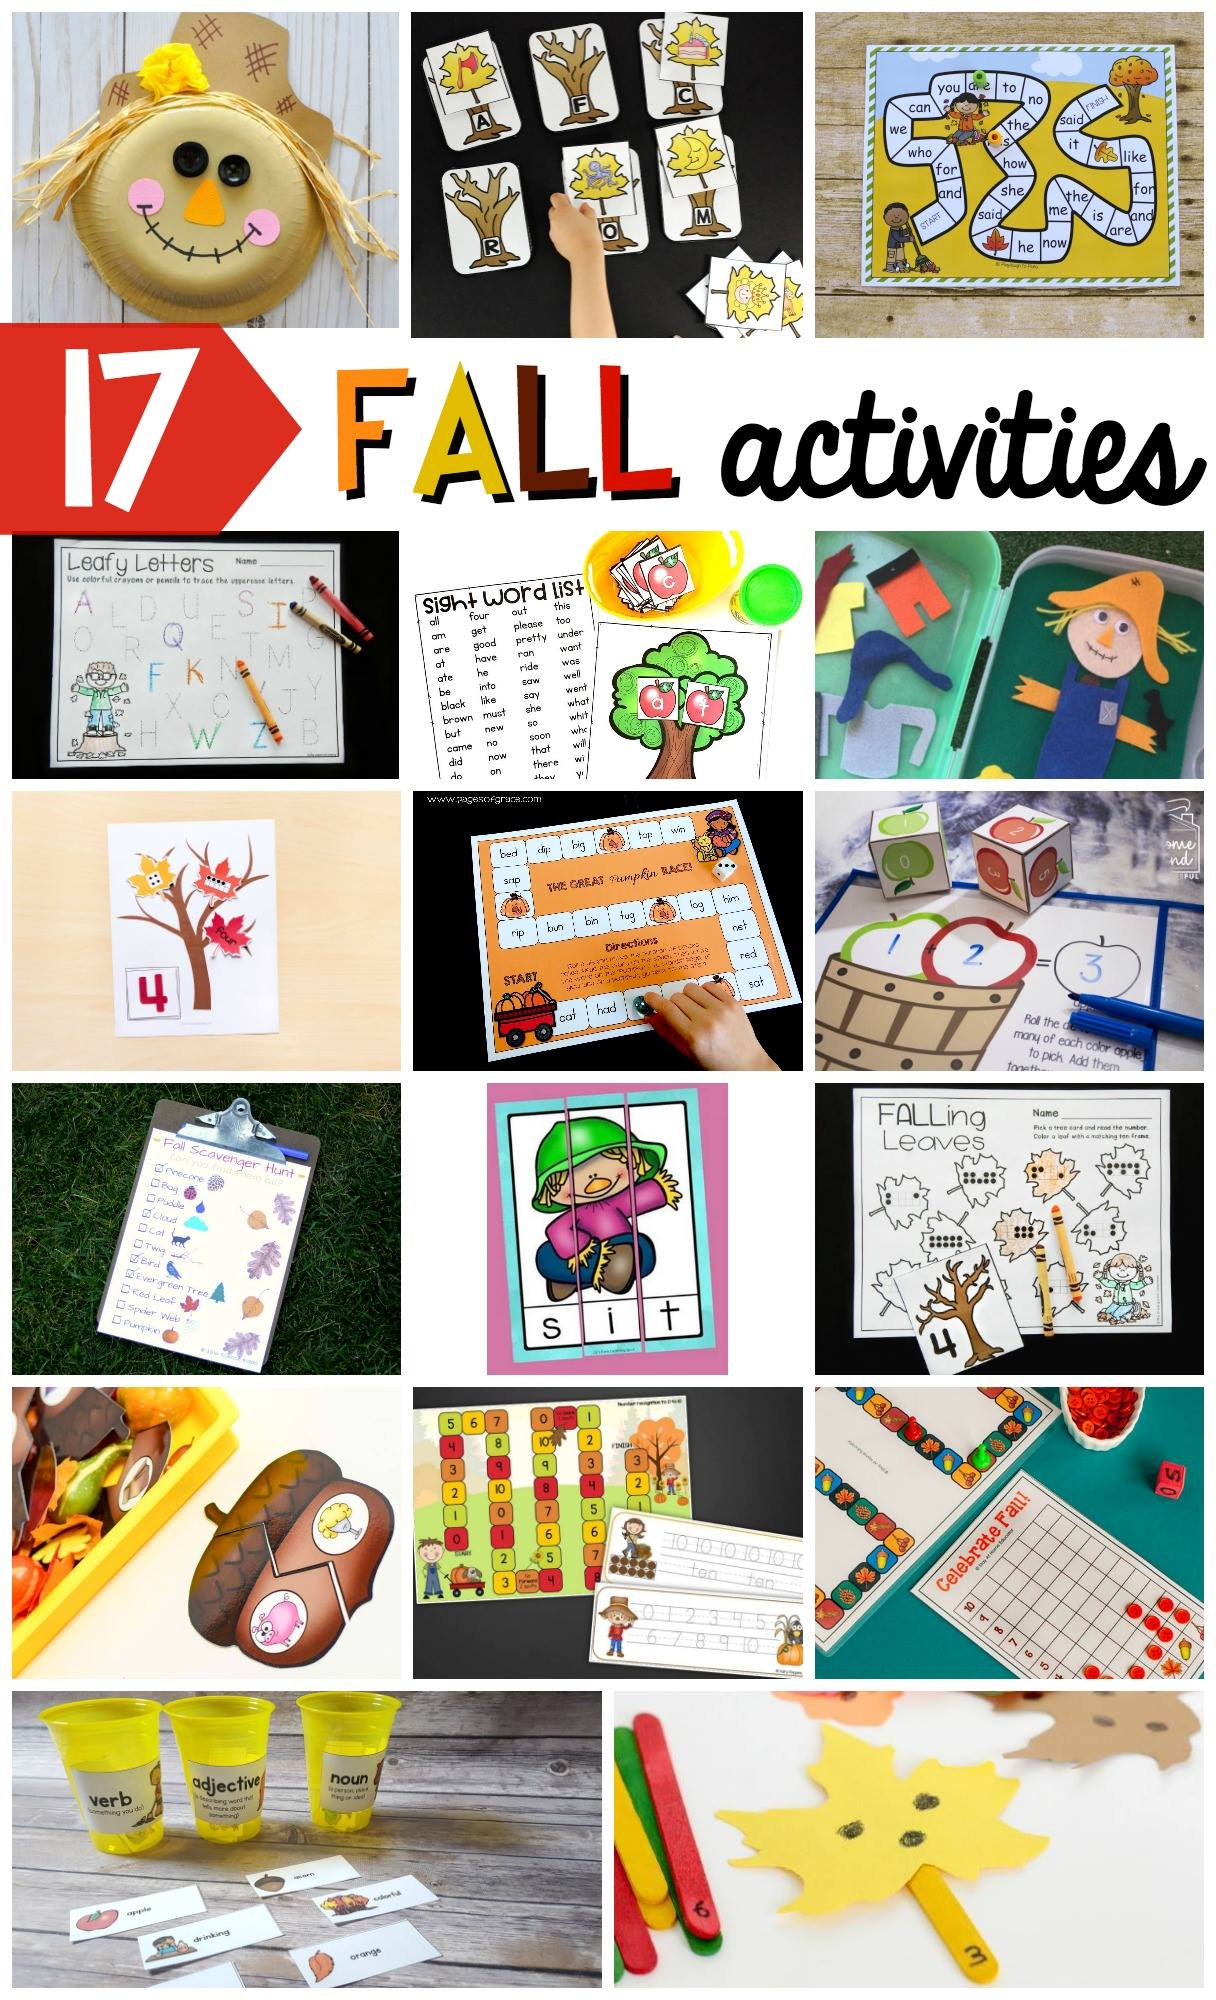 Fall Initial Sound Match-Up Free Printable is the perfect addition to your literacy centers this autumn. This hands-on activity is perfect for preschool, kindergarten, and first grade students.